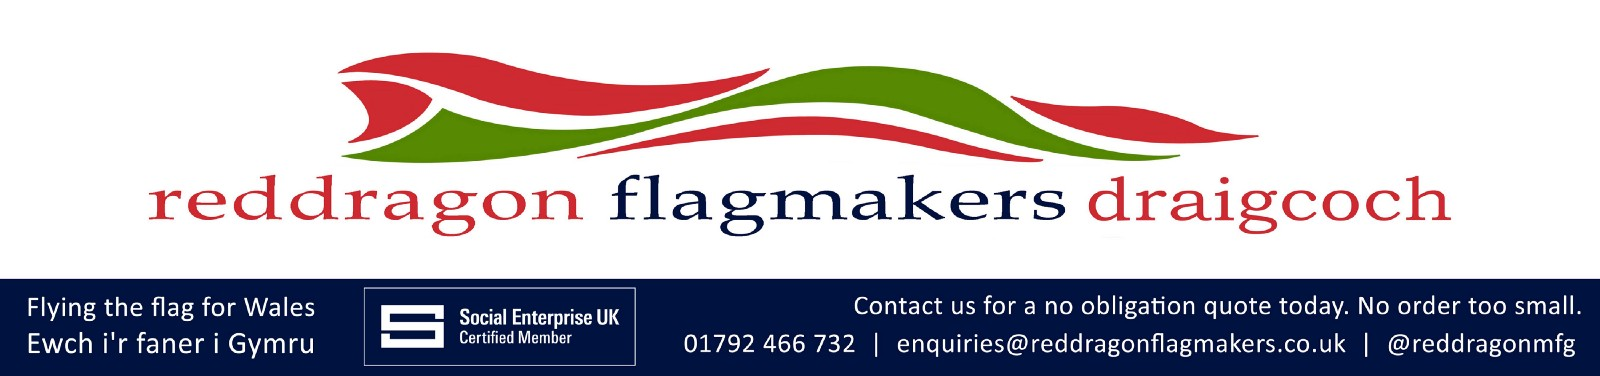 Why Custom Flags Are The Best Choice For Every Industry?